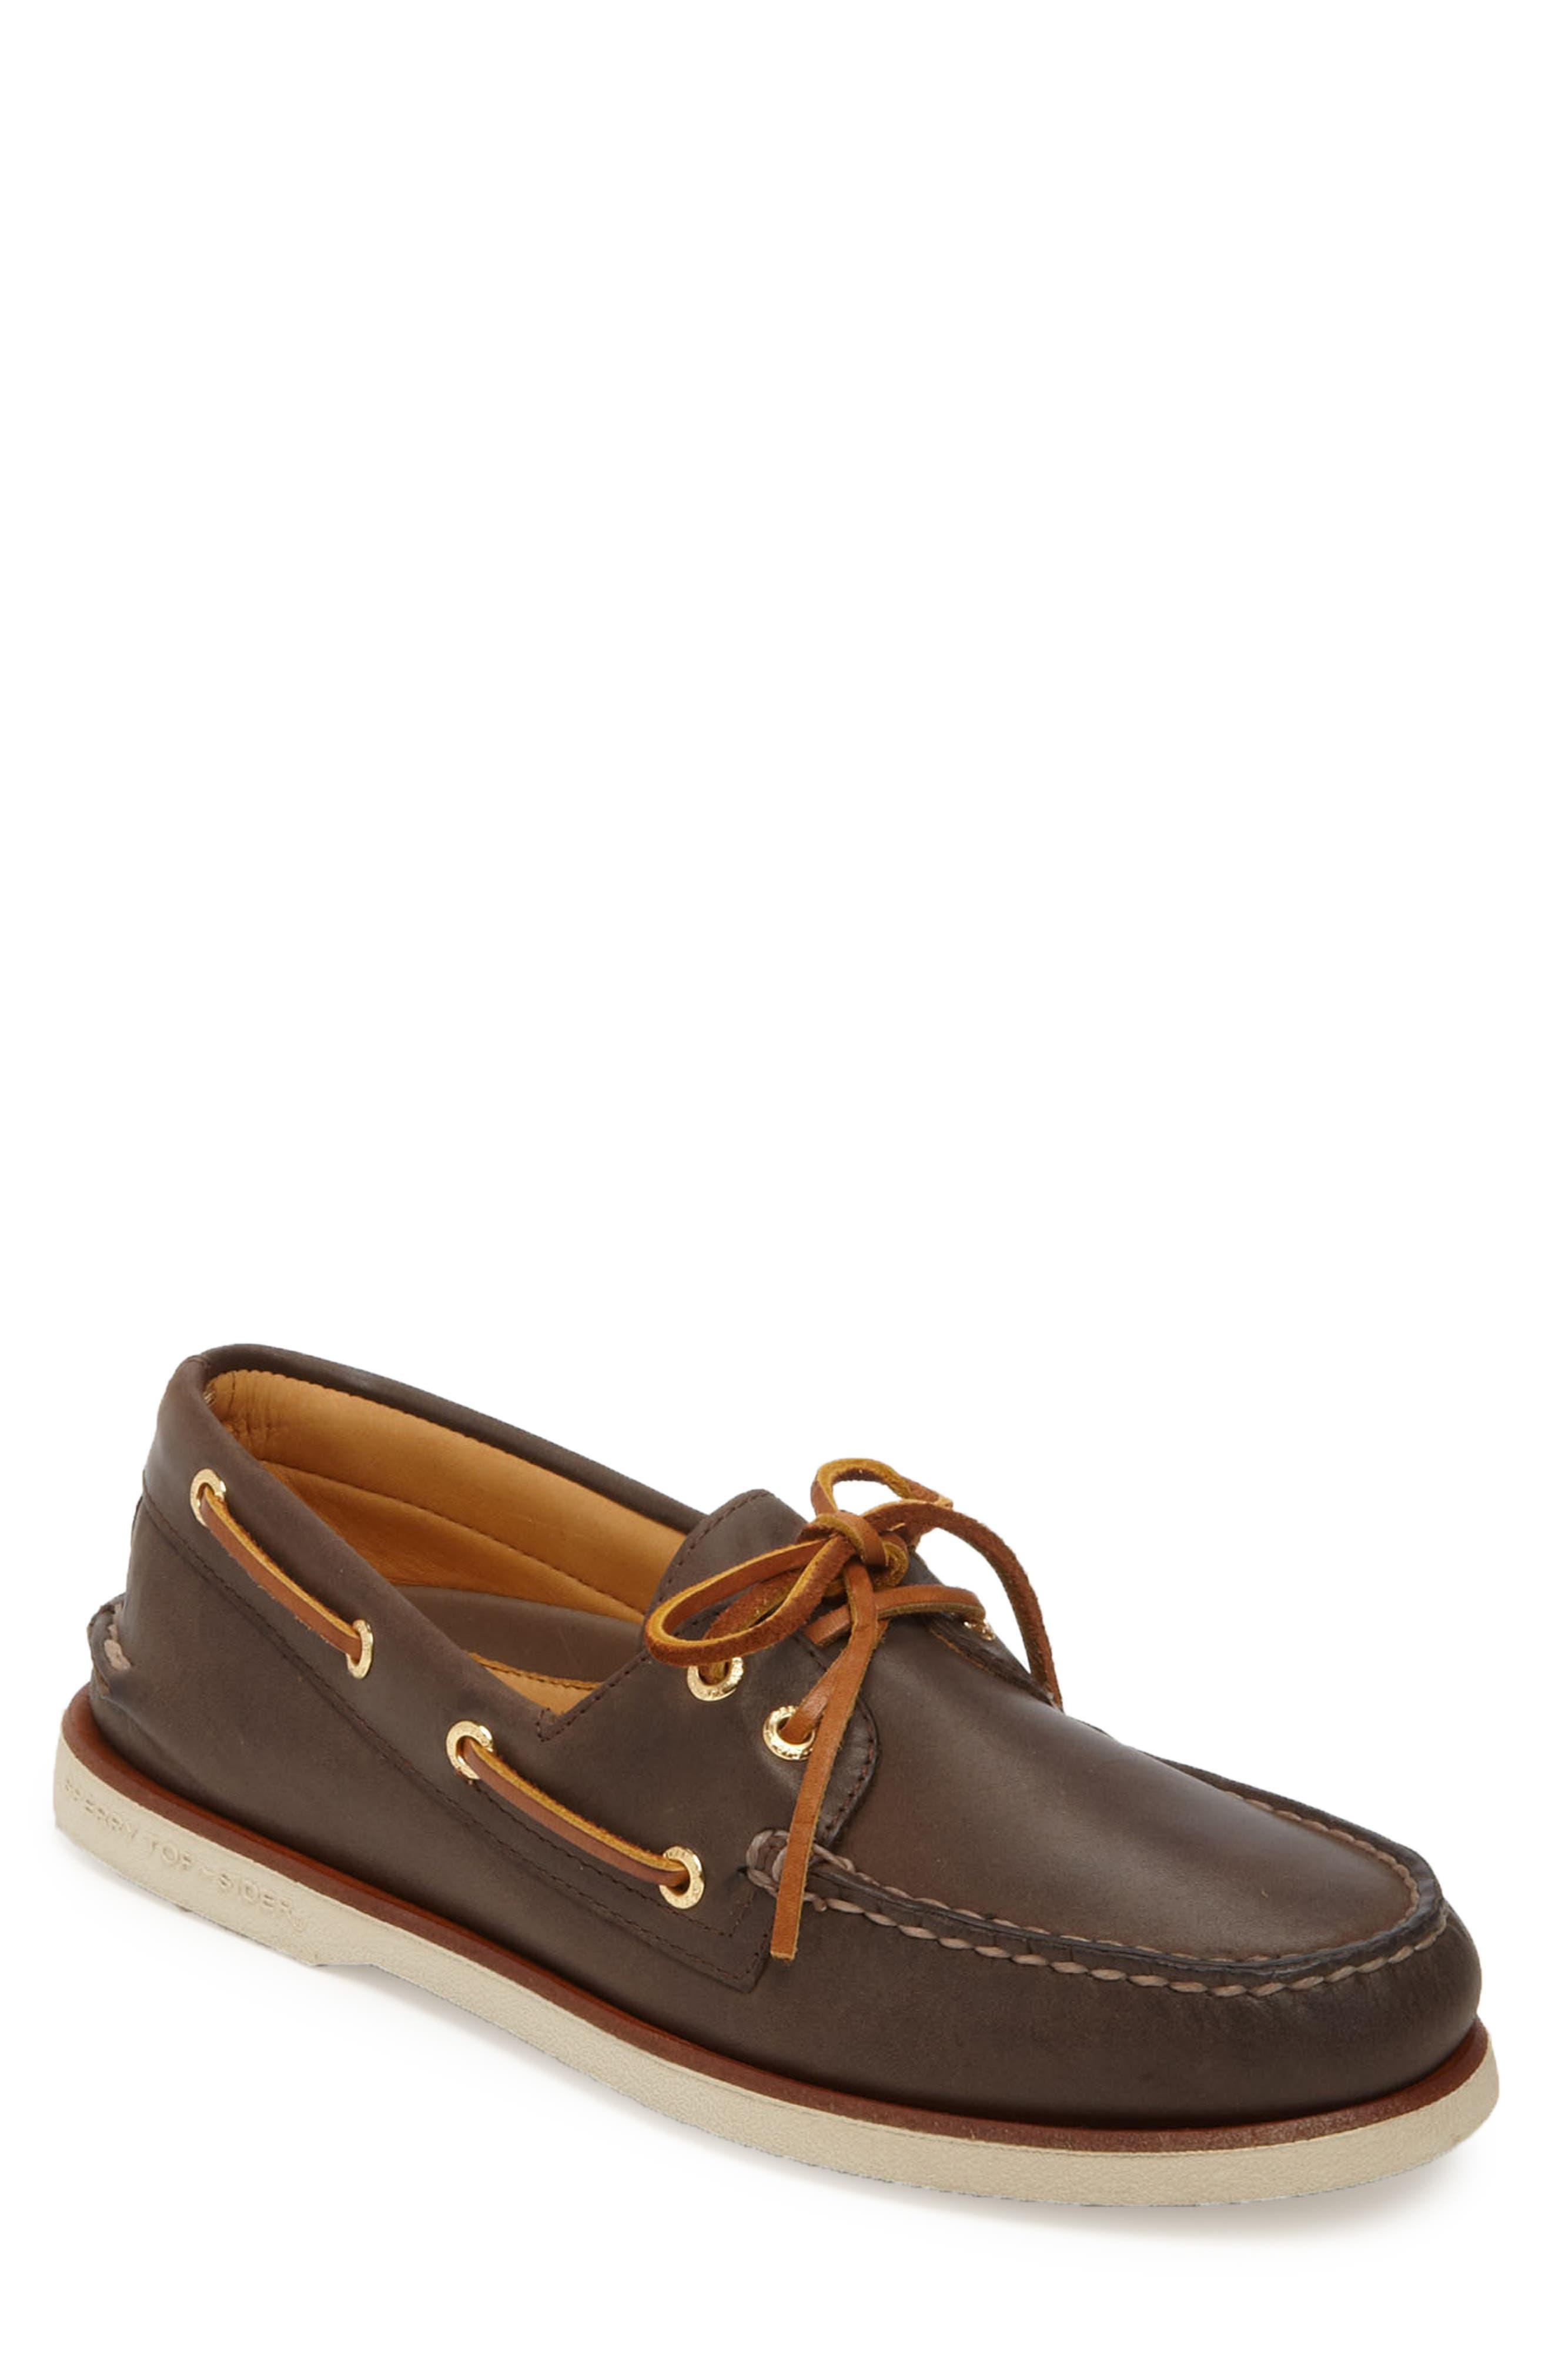 SPERRY, 'Gold Cup - Authentic Original' Boat Shoe, Main thumbnail 1, color, DARK BROWN LEATHER